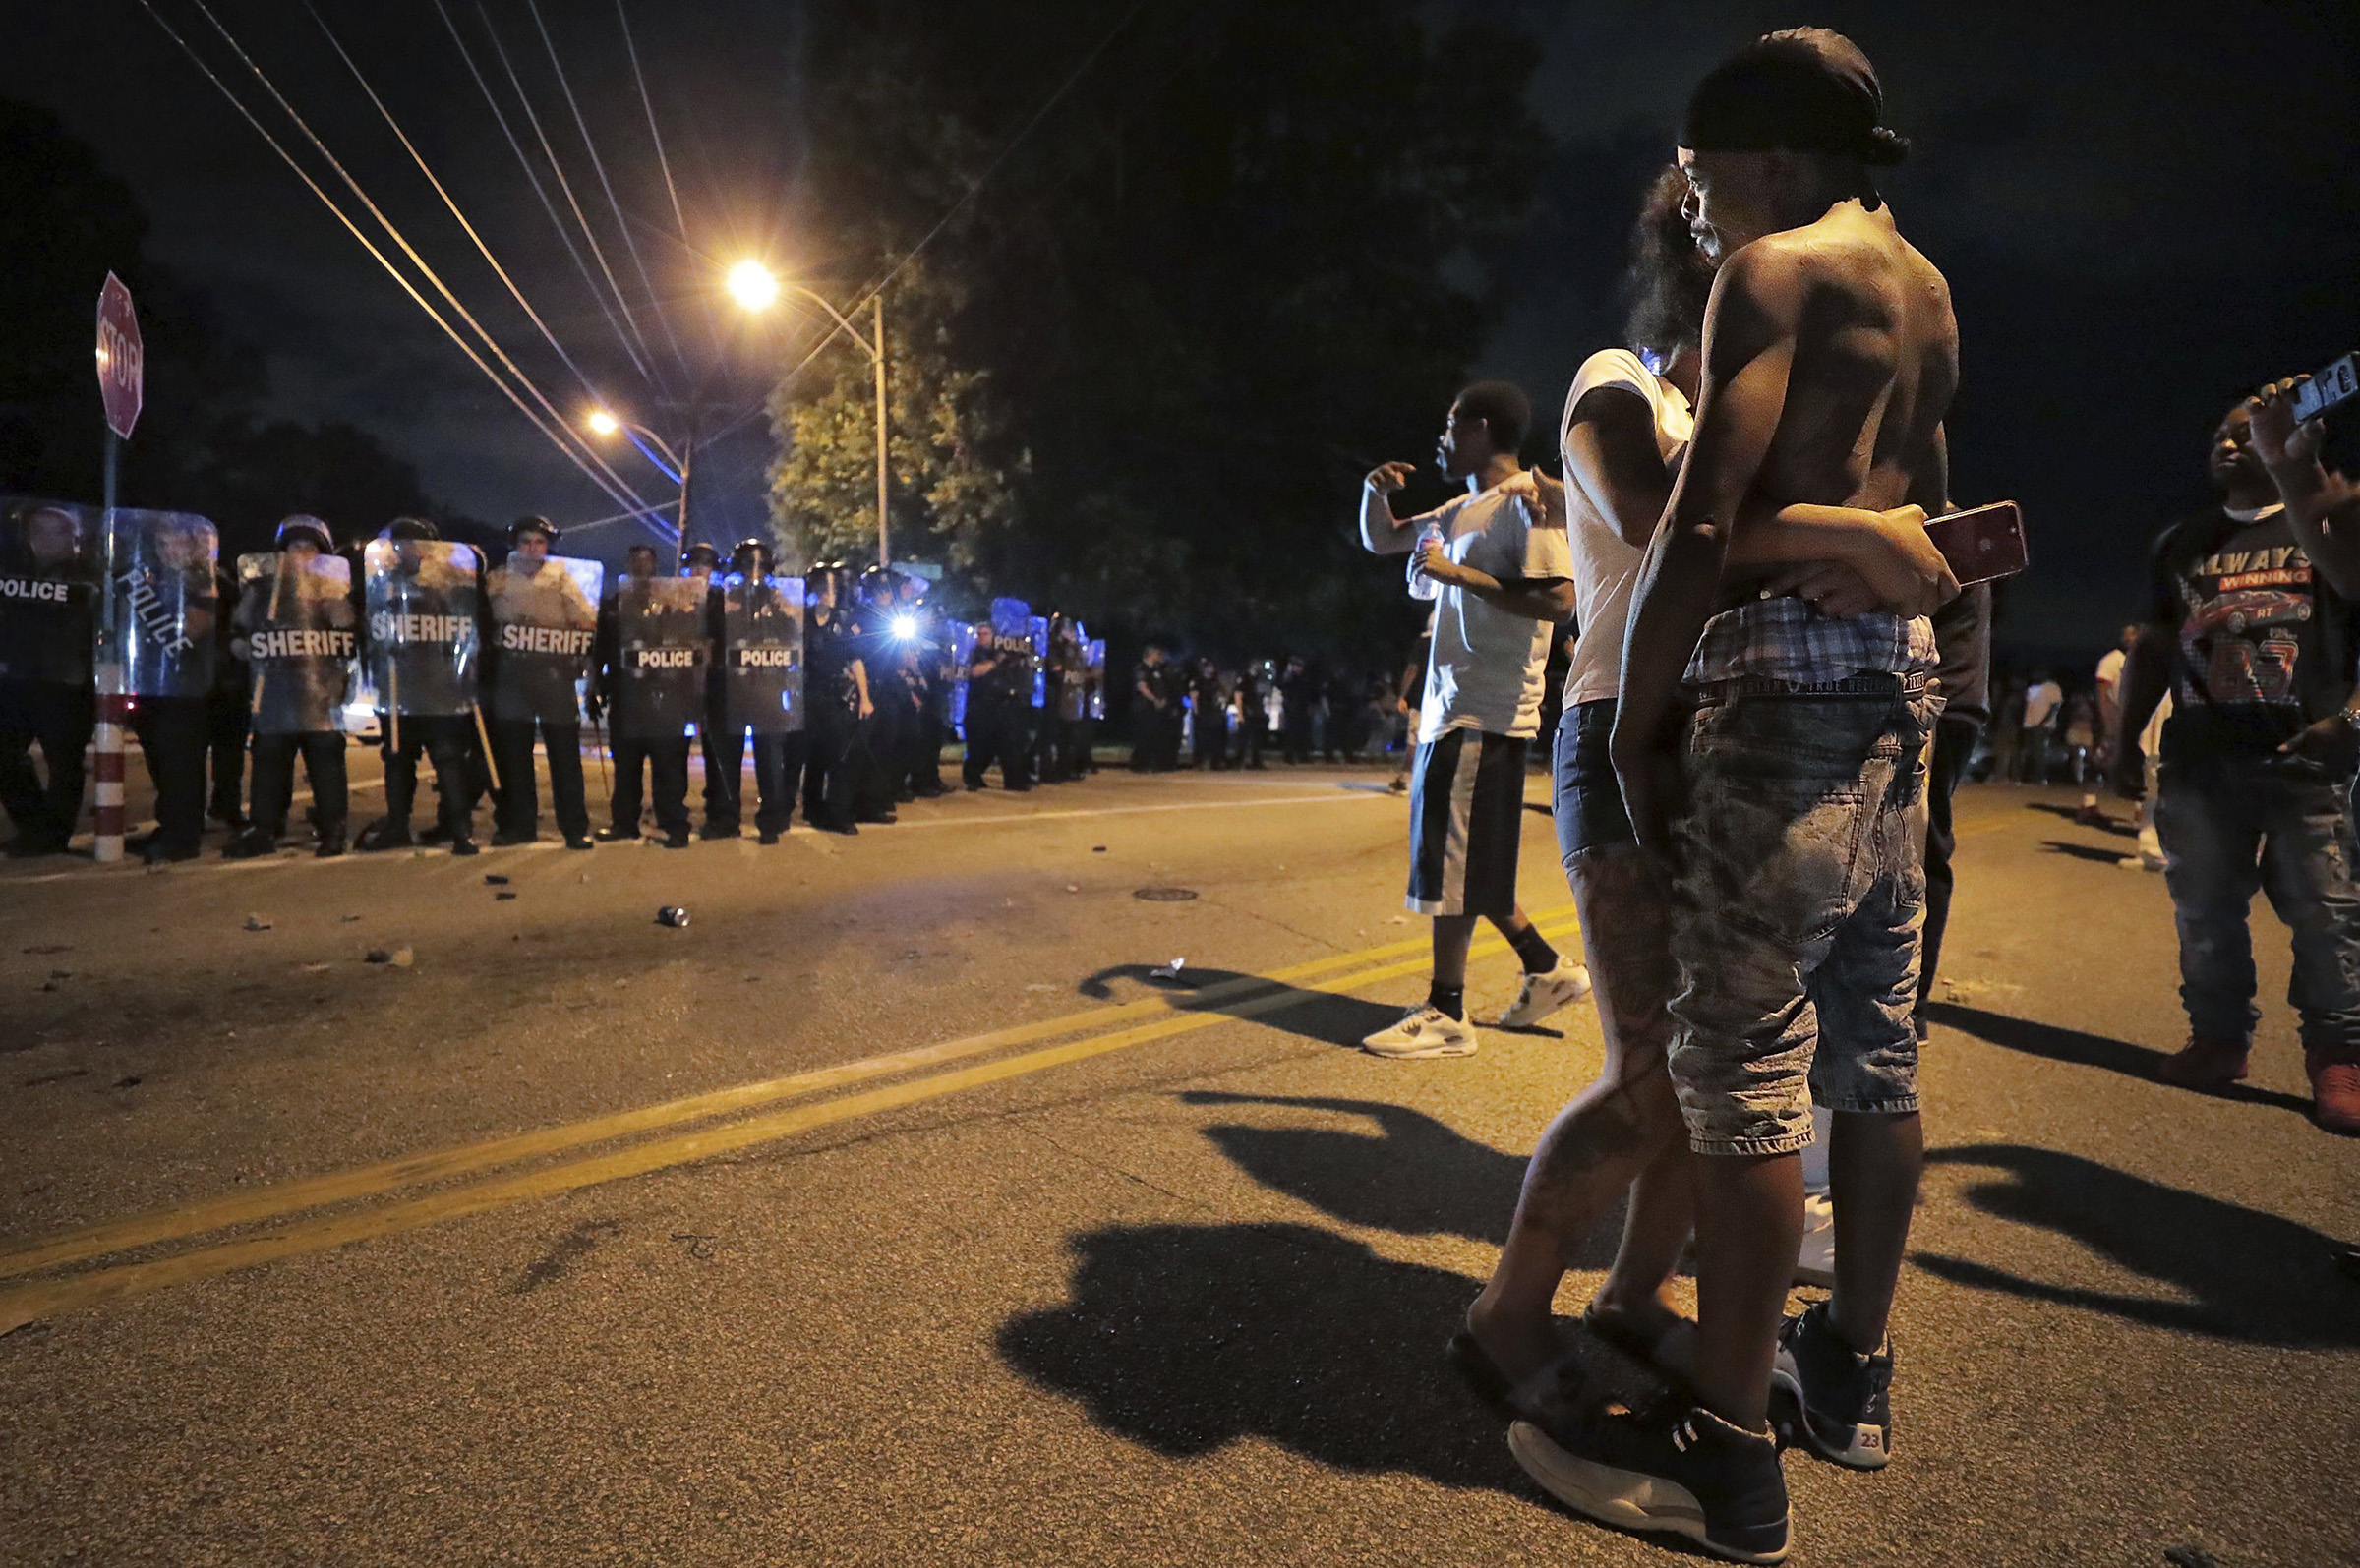 A man identified as Sonny Webber, right, father of Brandon Webber who was reportedly shot by U.S. Marshals, joins a standoff as protesters take to the streets in anger against the shooting, on June 12, 2019, in Memphis, Tennessee.